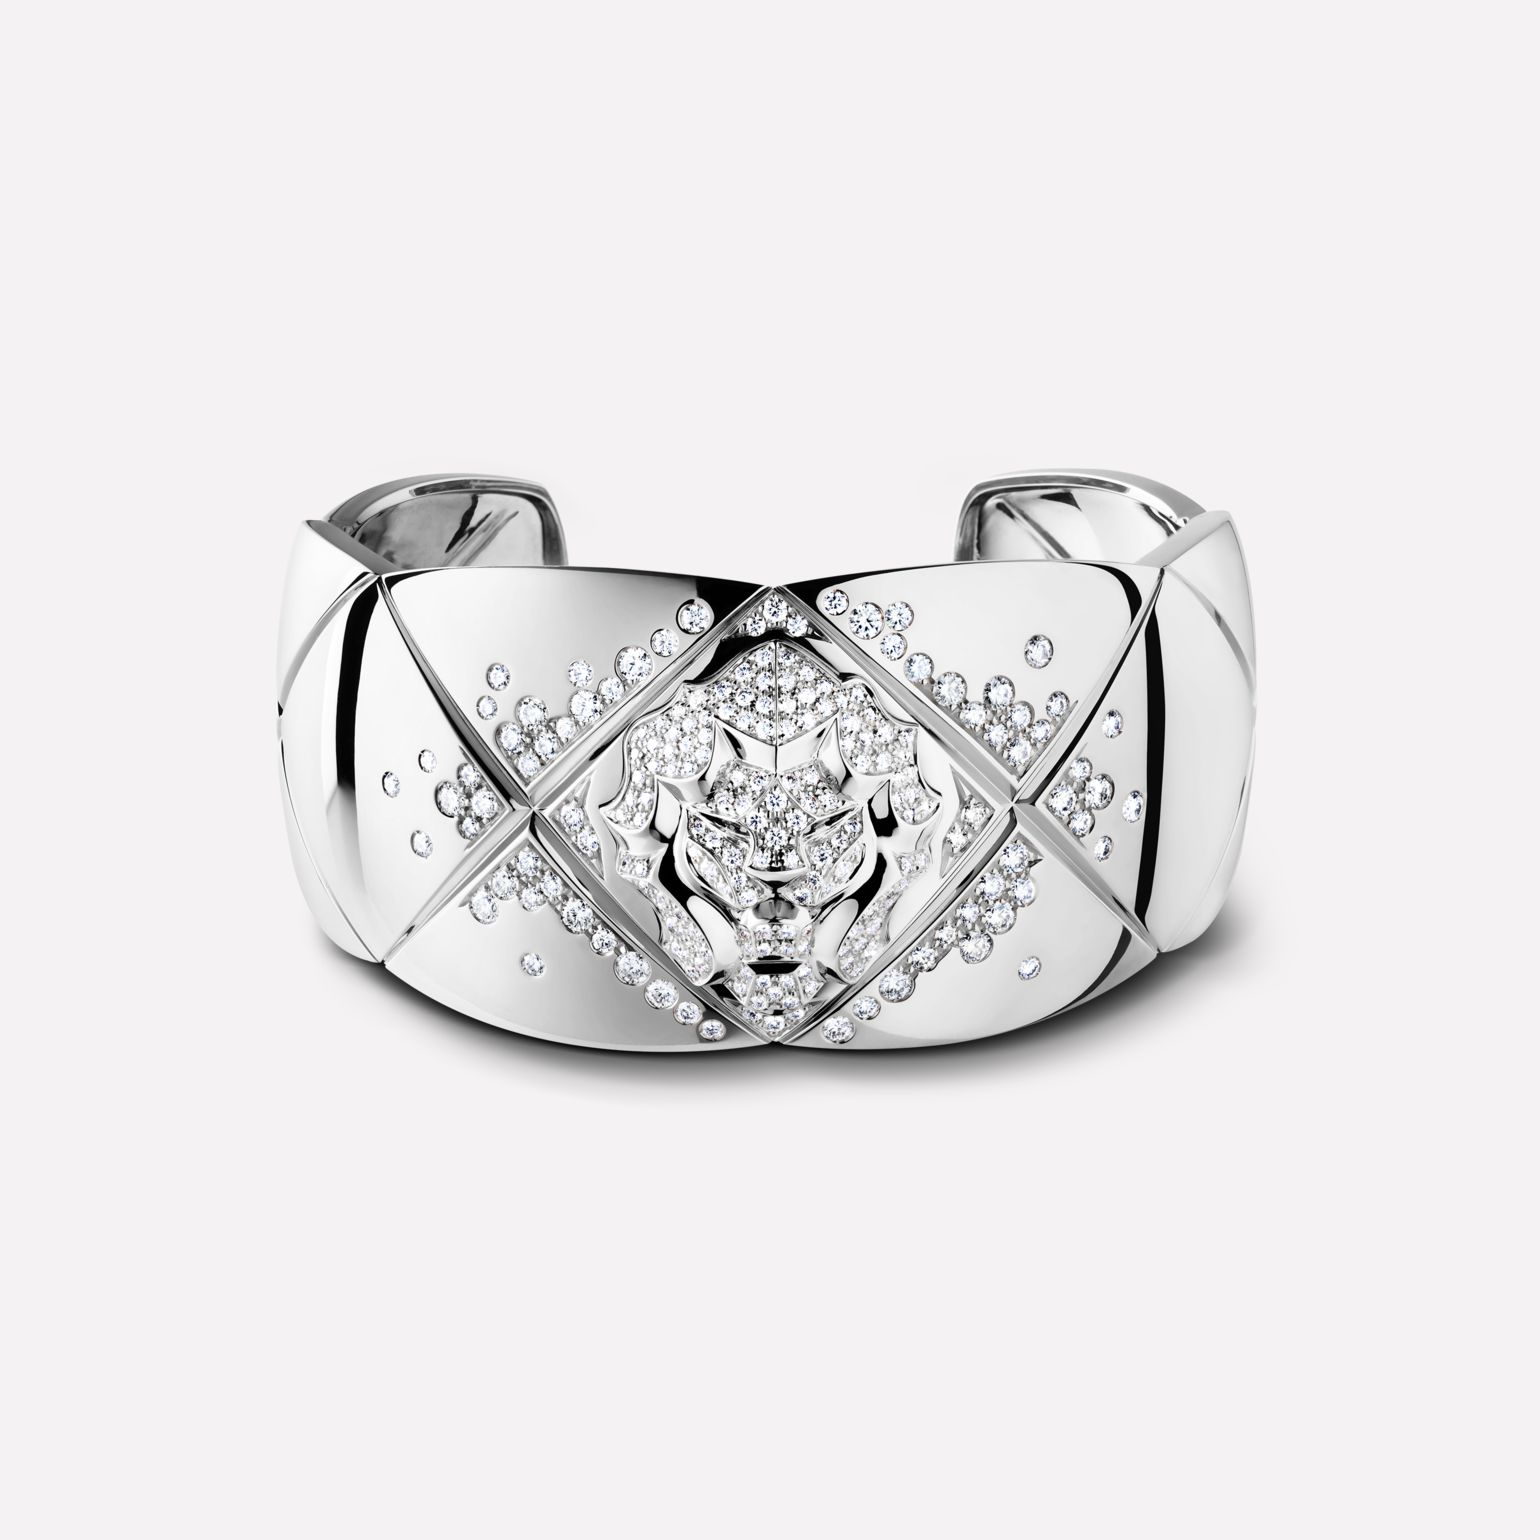 Coco Crush Bracelet Coco Crush quilted and lion cuff in 18K white gold and diamonds